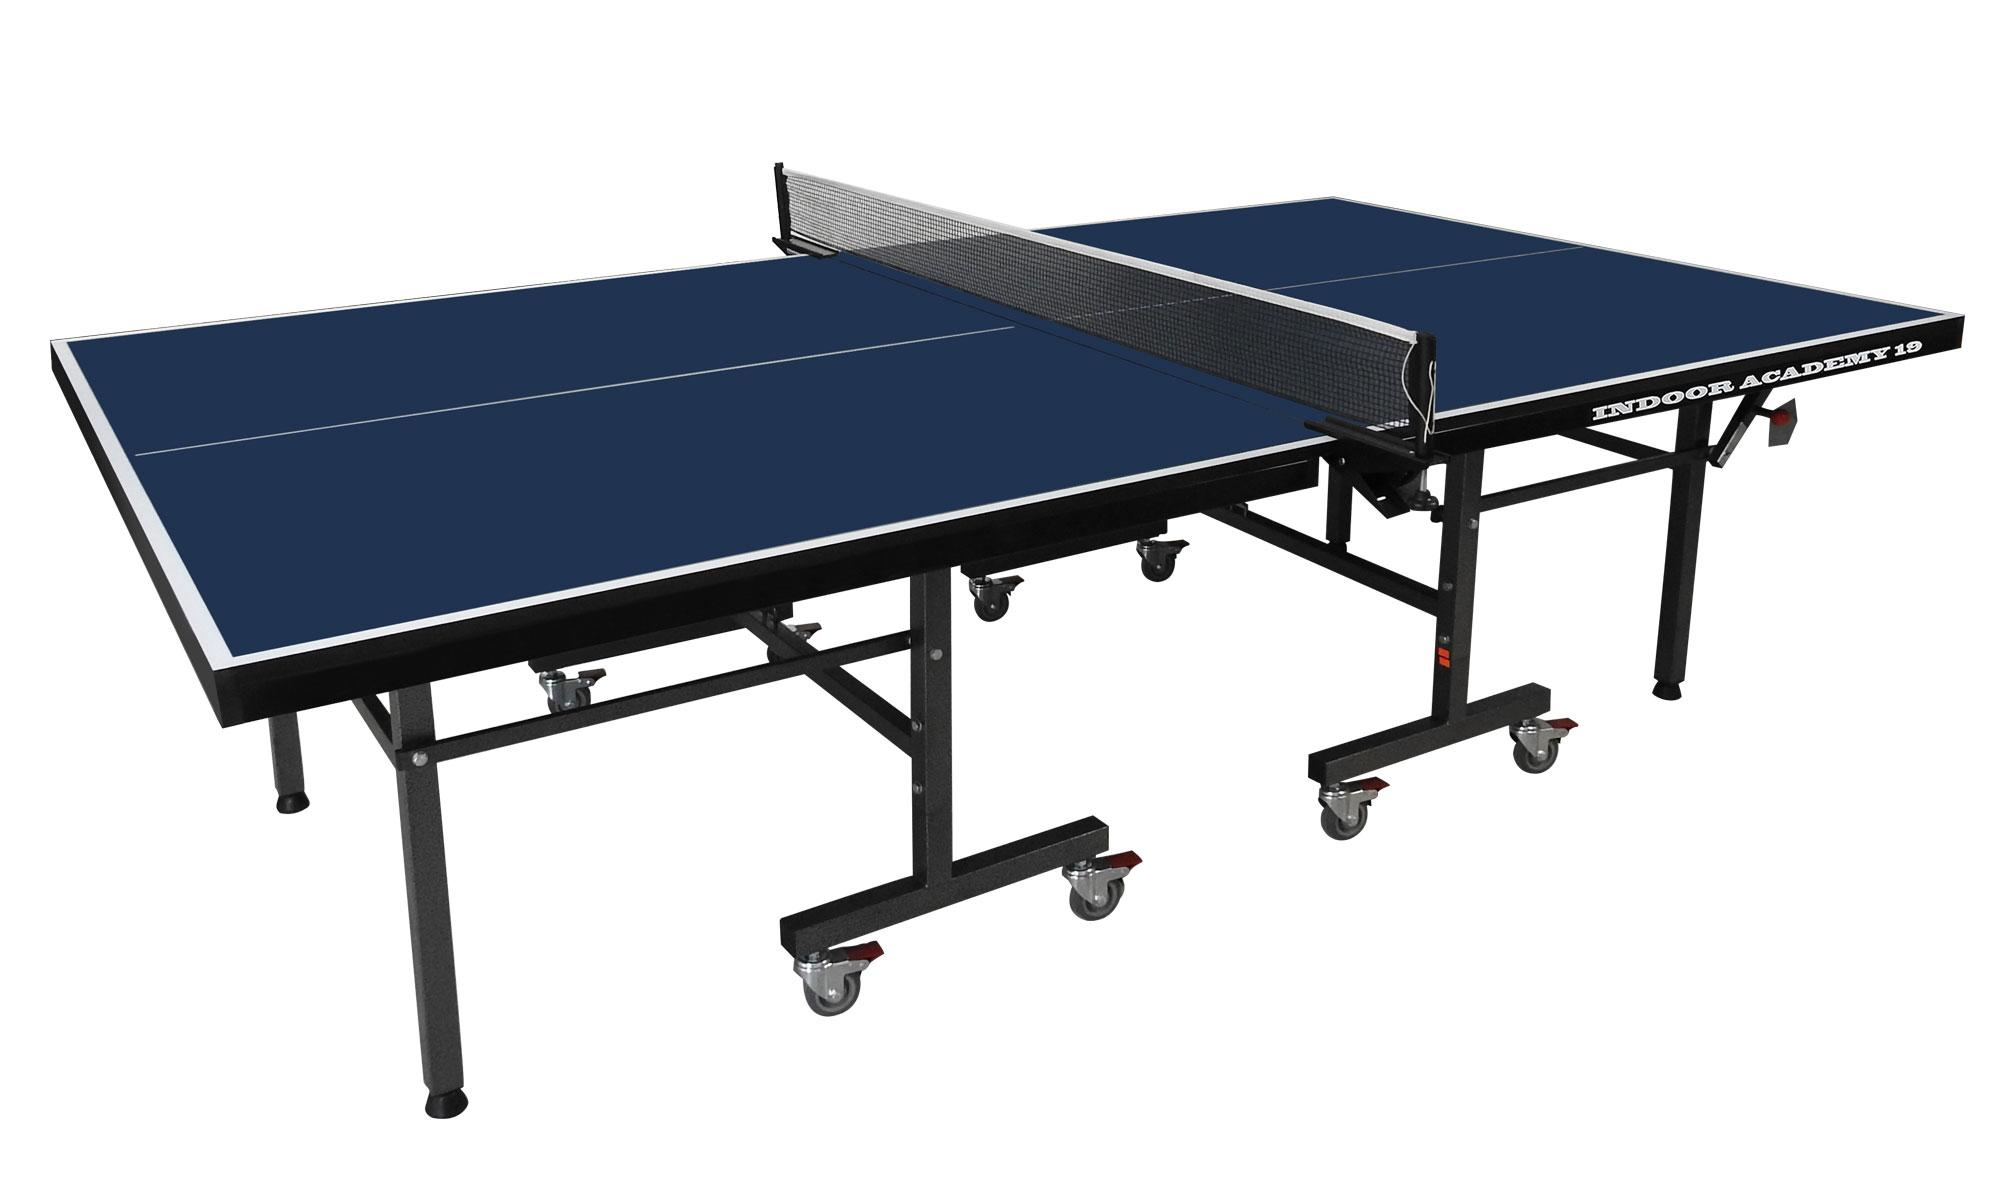 Gallant knight academy 19 indoor table tennis table for Table tennis